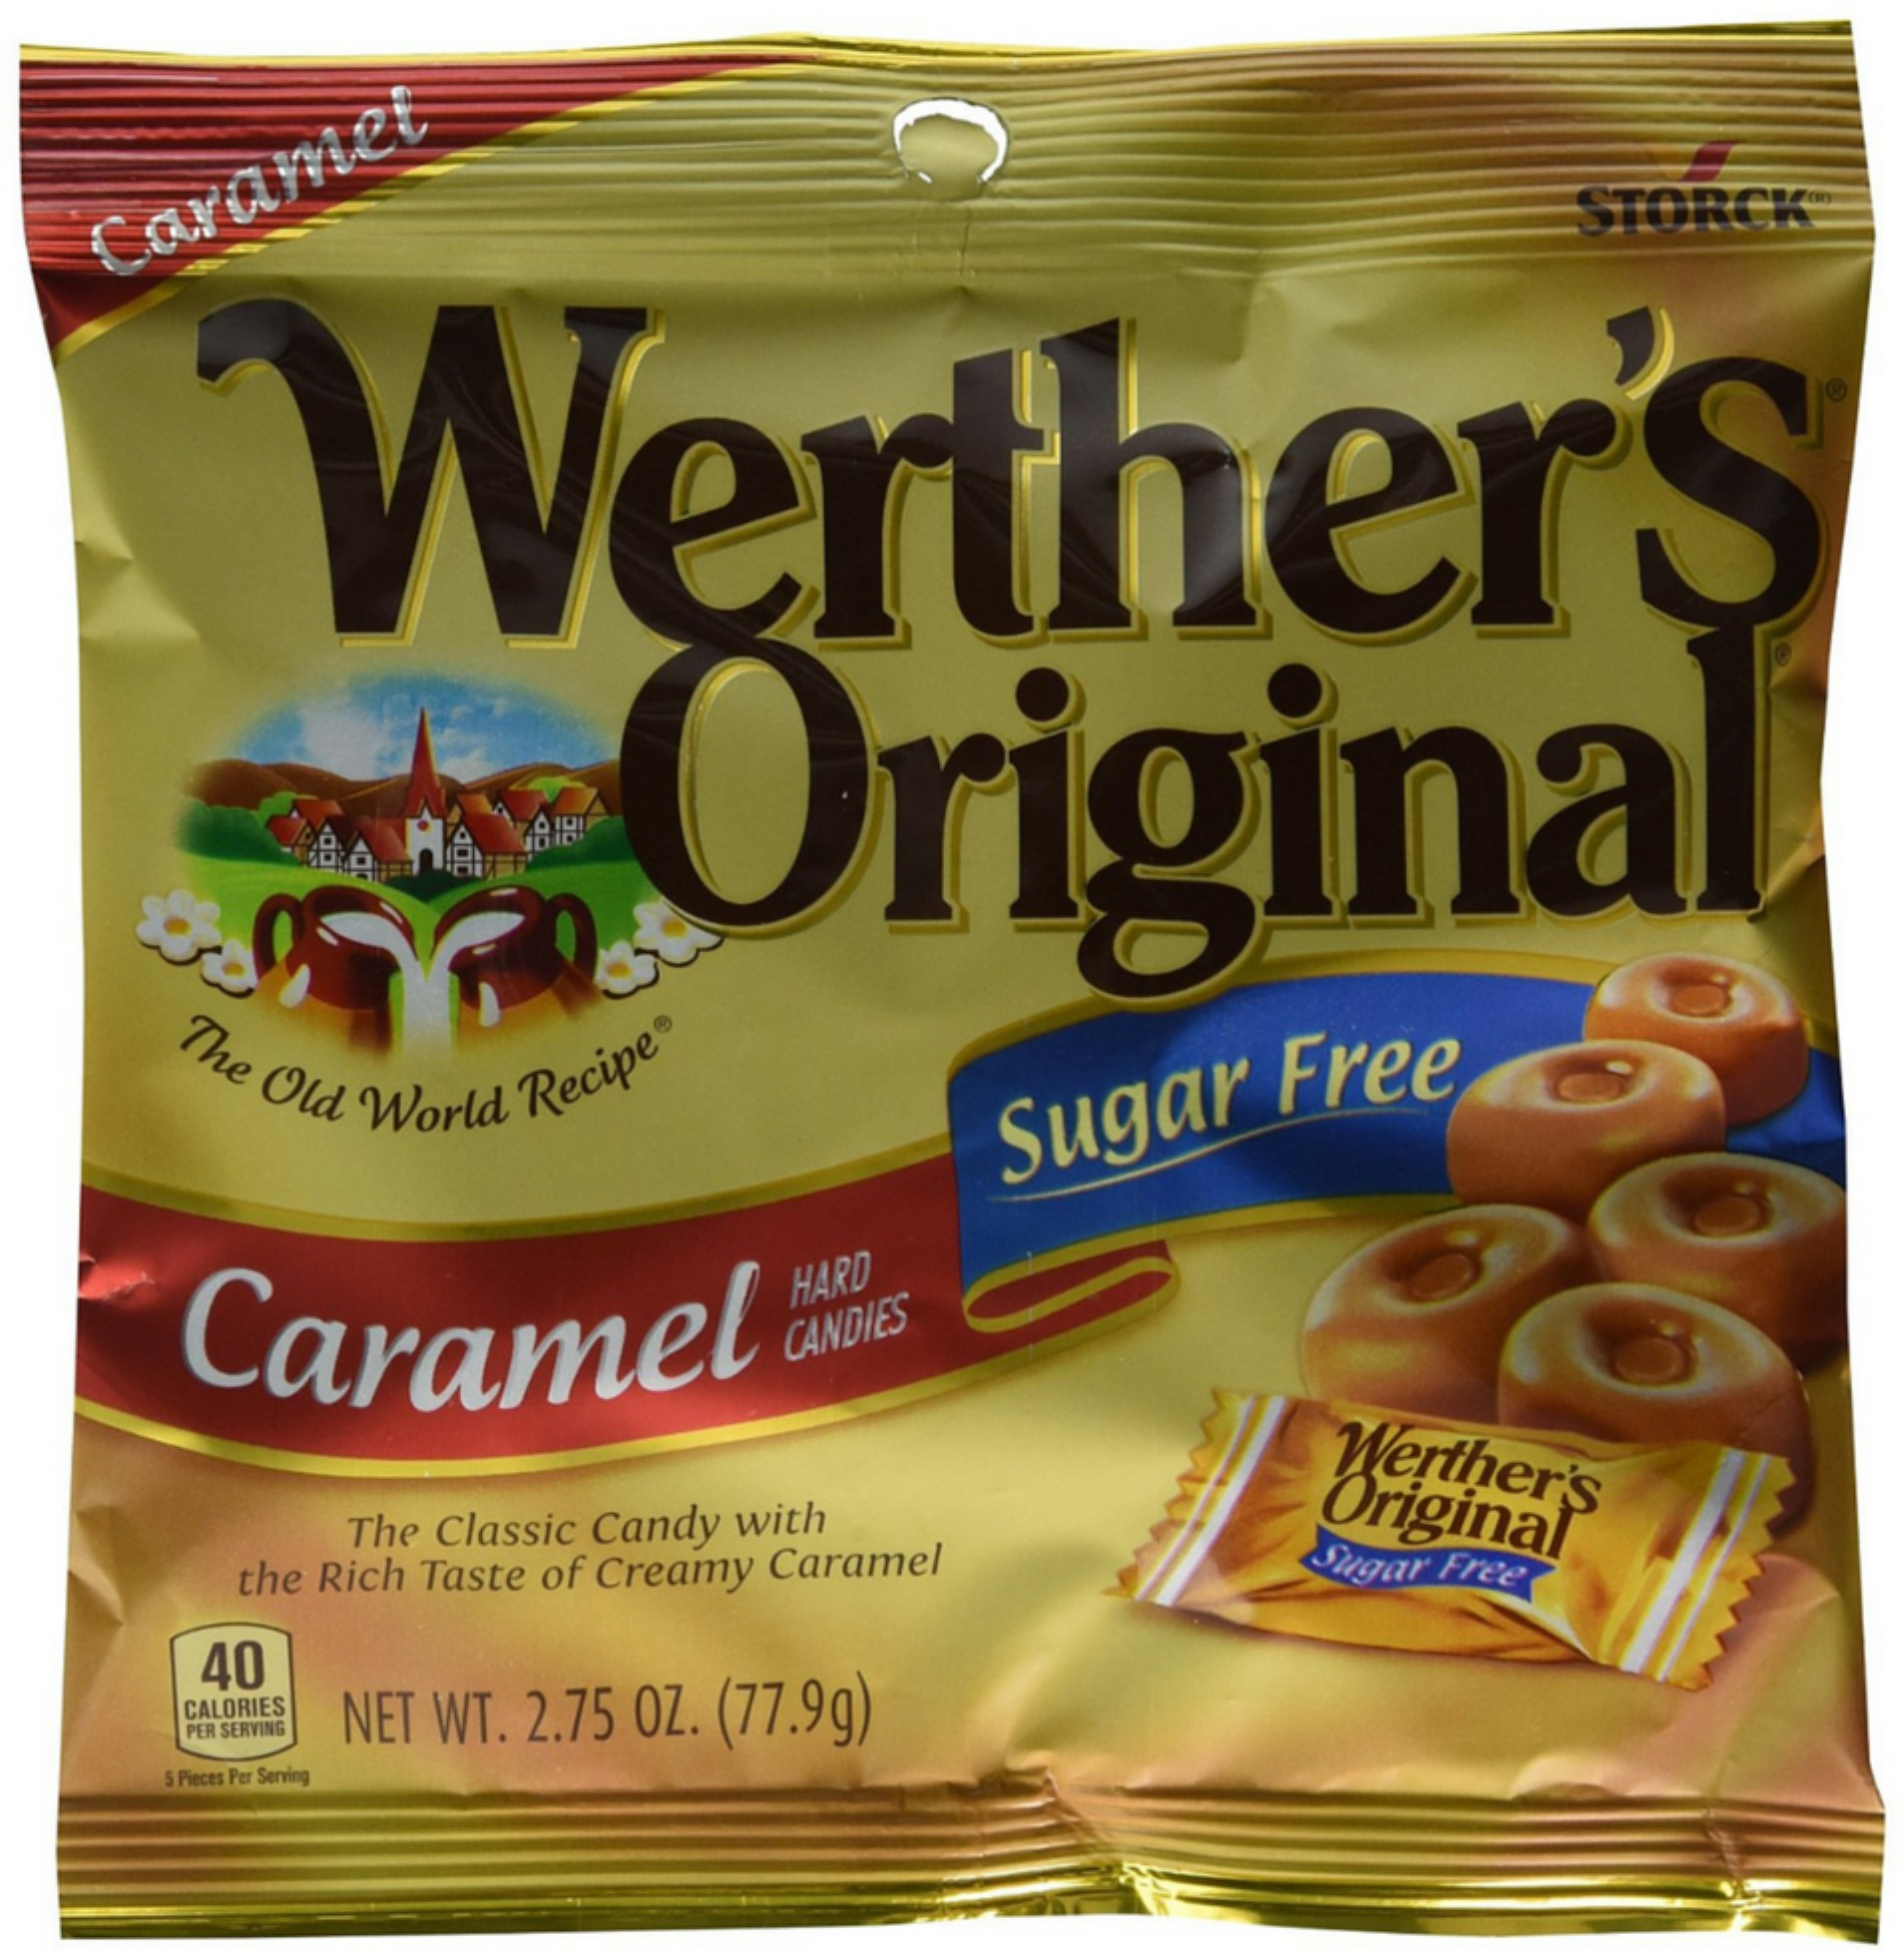 Werthers Original Sugar Free Caramel Hard Candies 12 pack (Pack of 4)